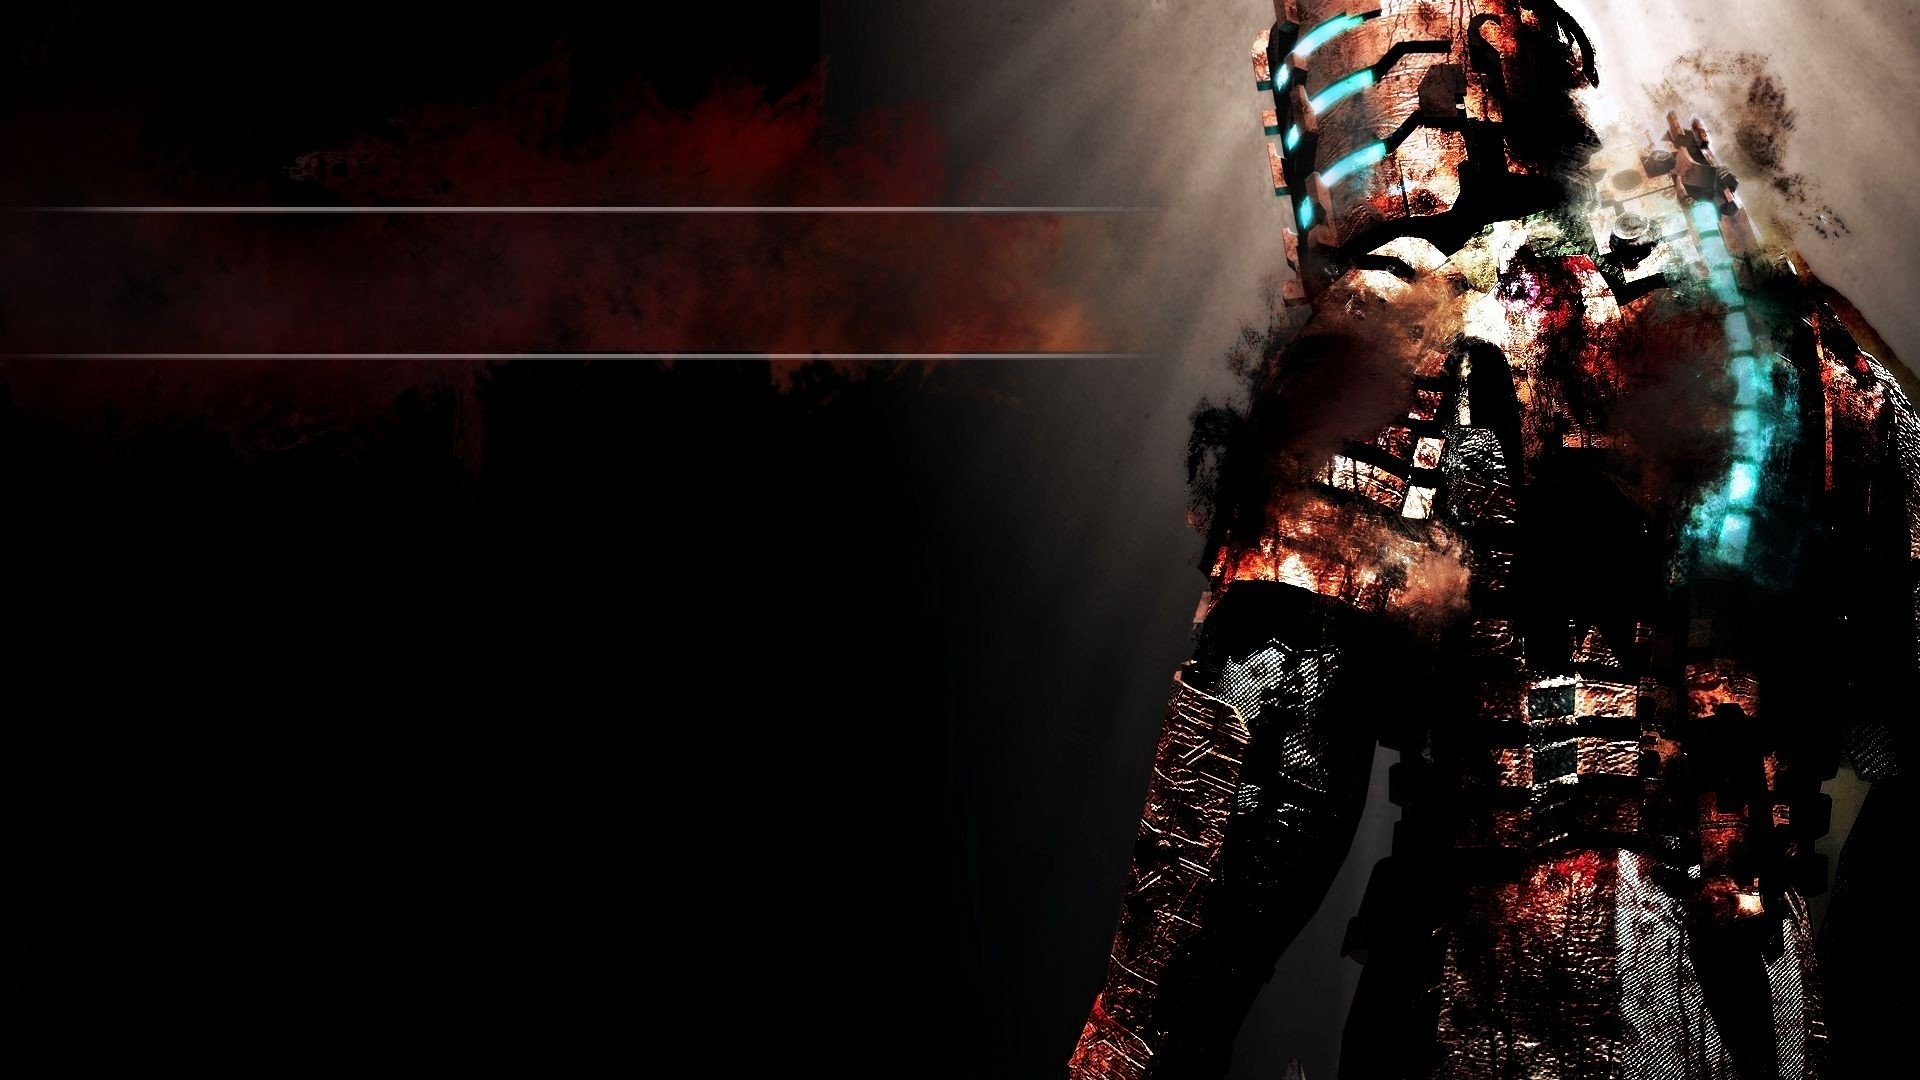 gore dead space badass game HD Wallpaper – Space & Planets (#